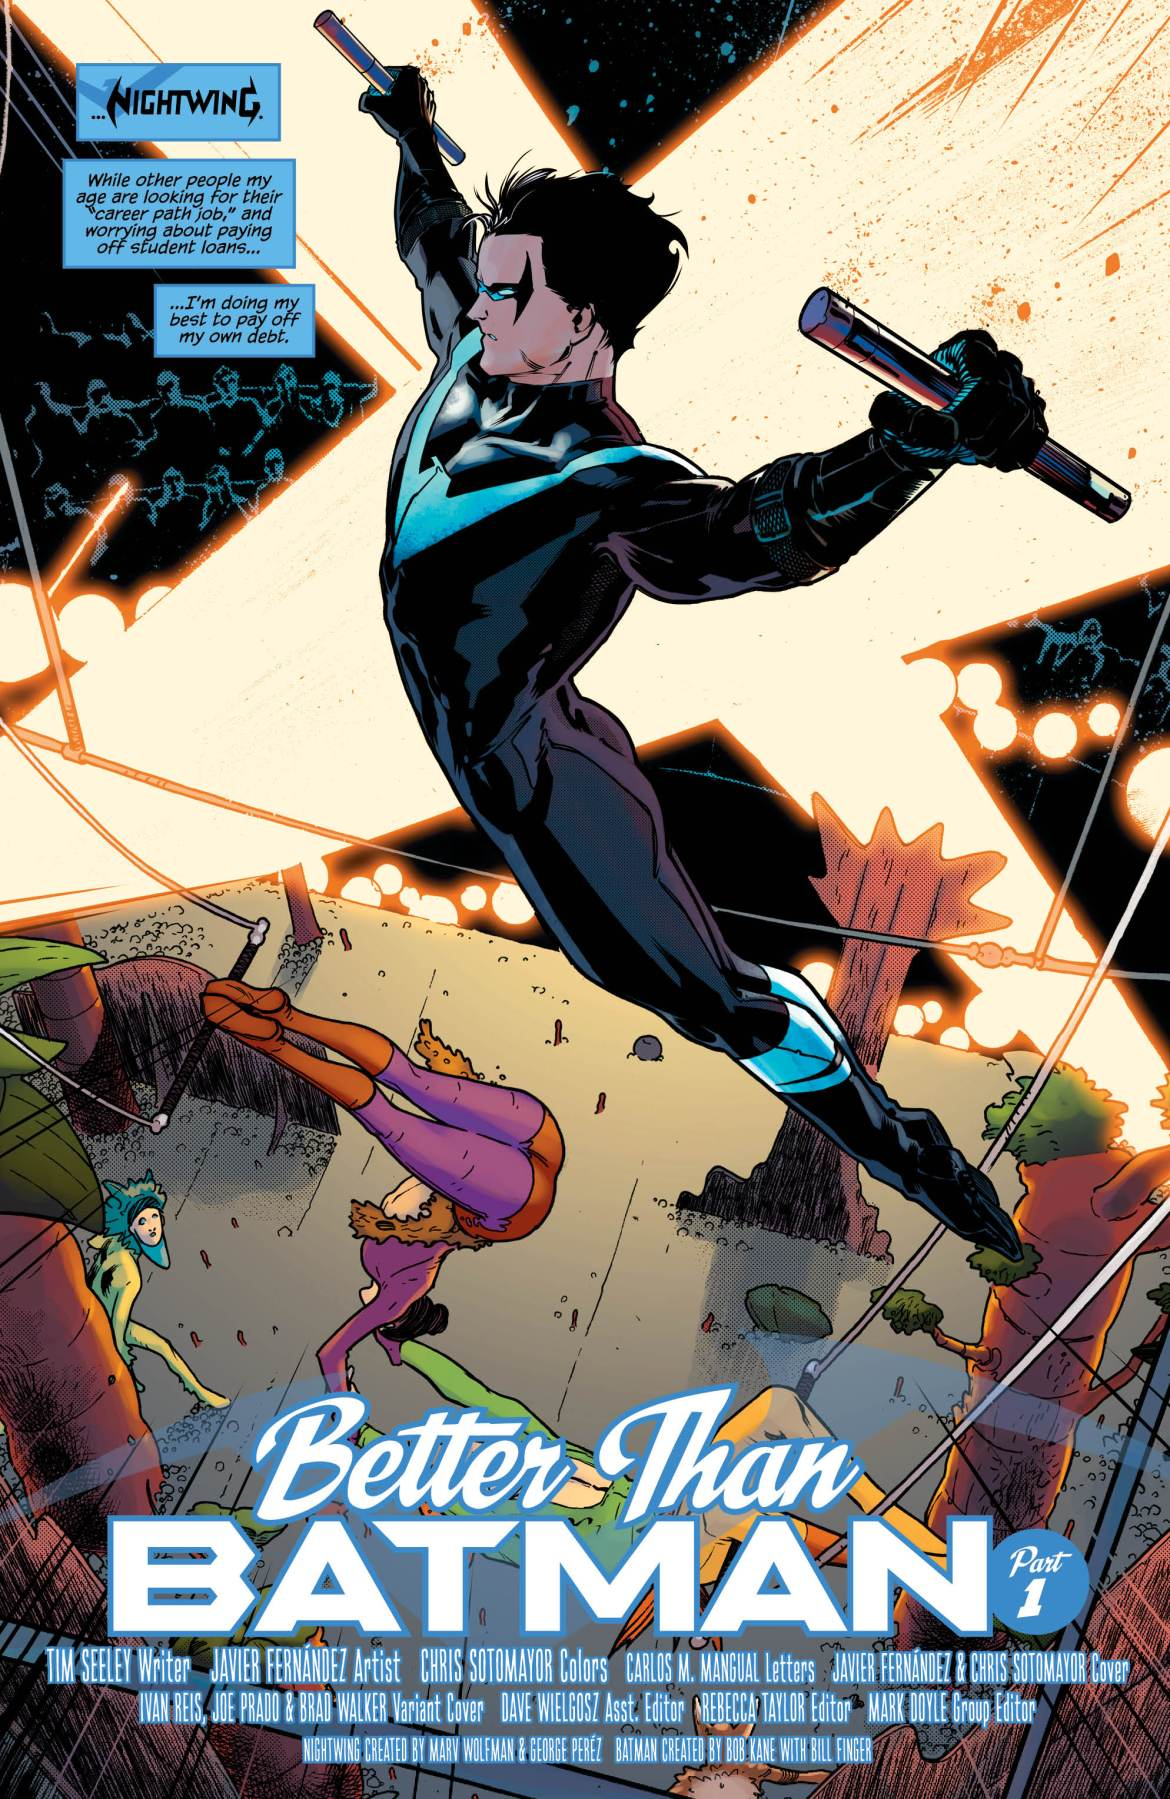 Nightwing Vol. 1: Better Than Batman – Review